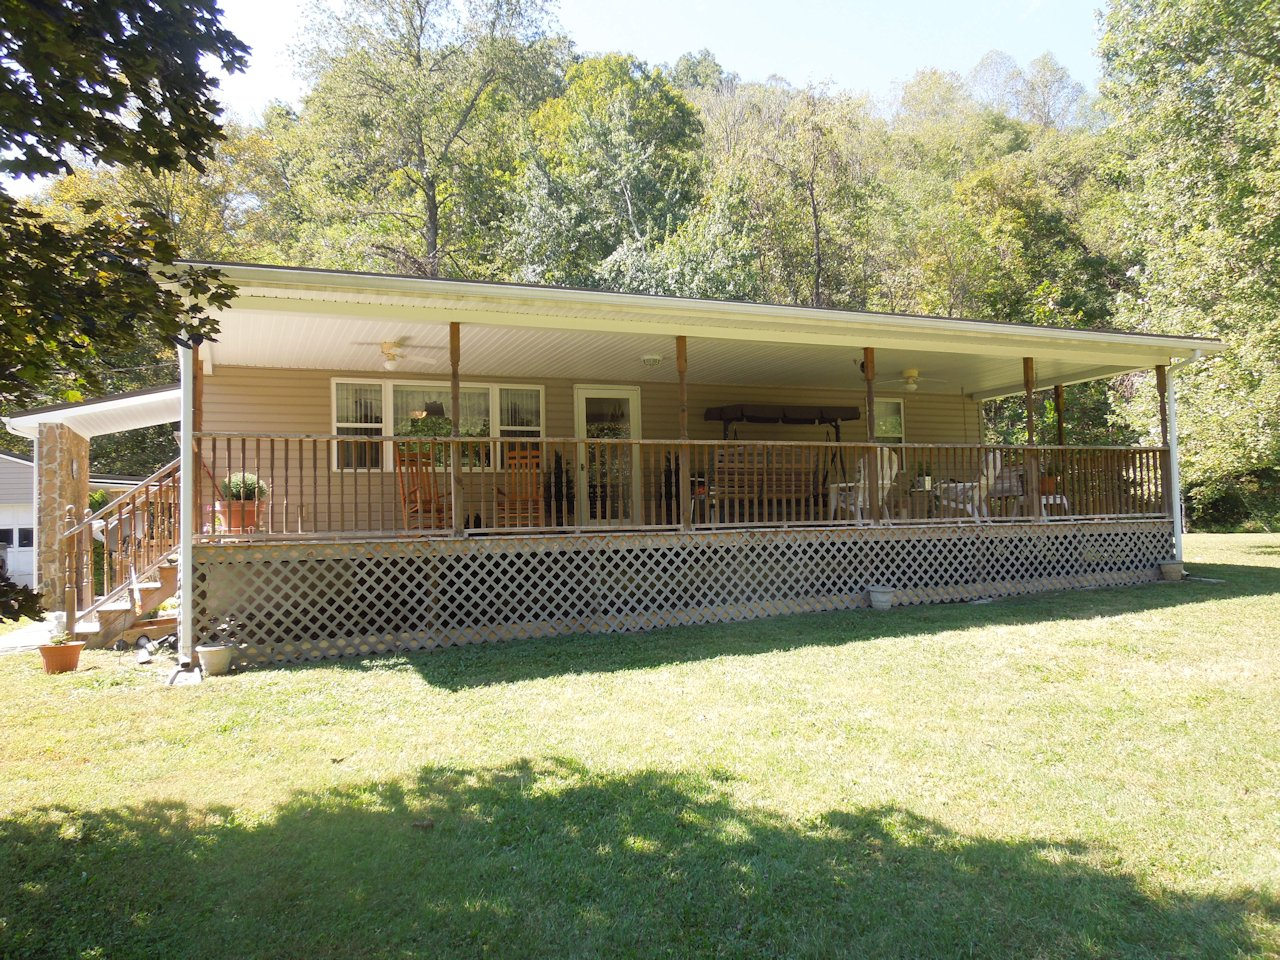 47 Private Road 2645 County Road 5, Kitts Hill, Ohio 45645